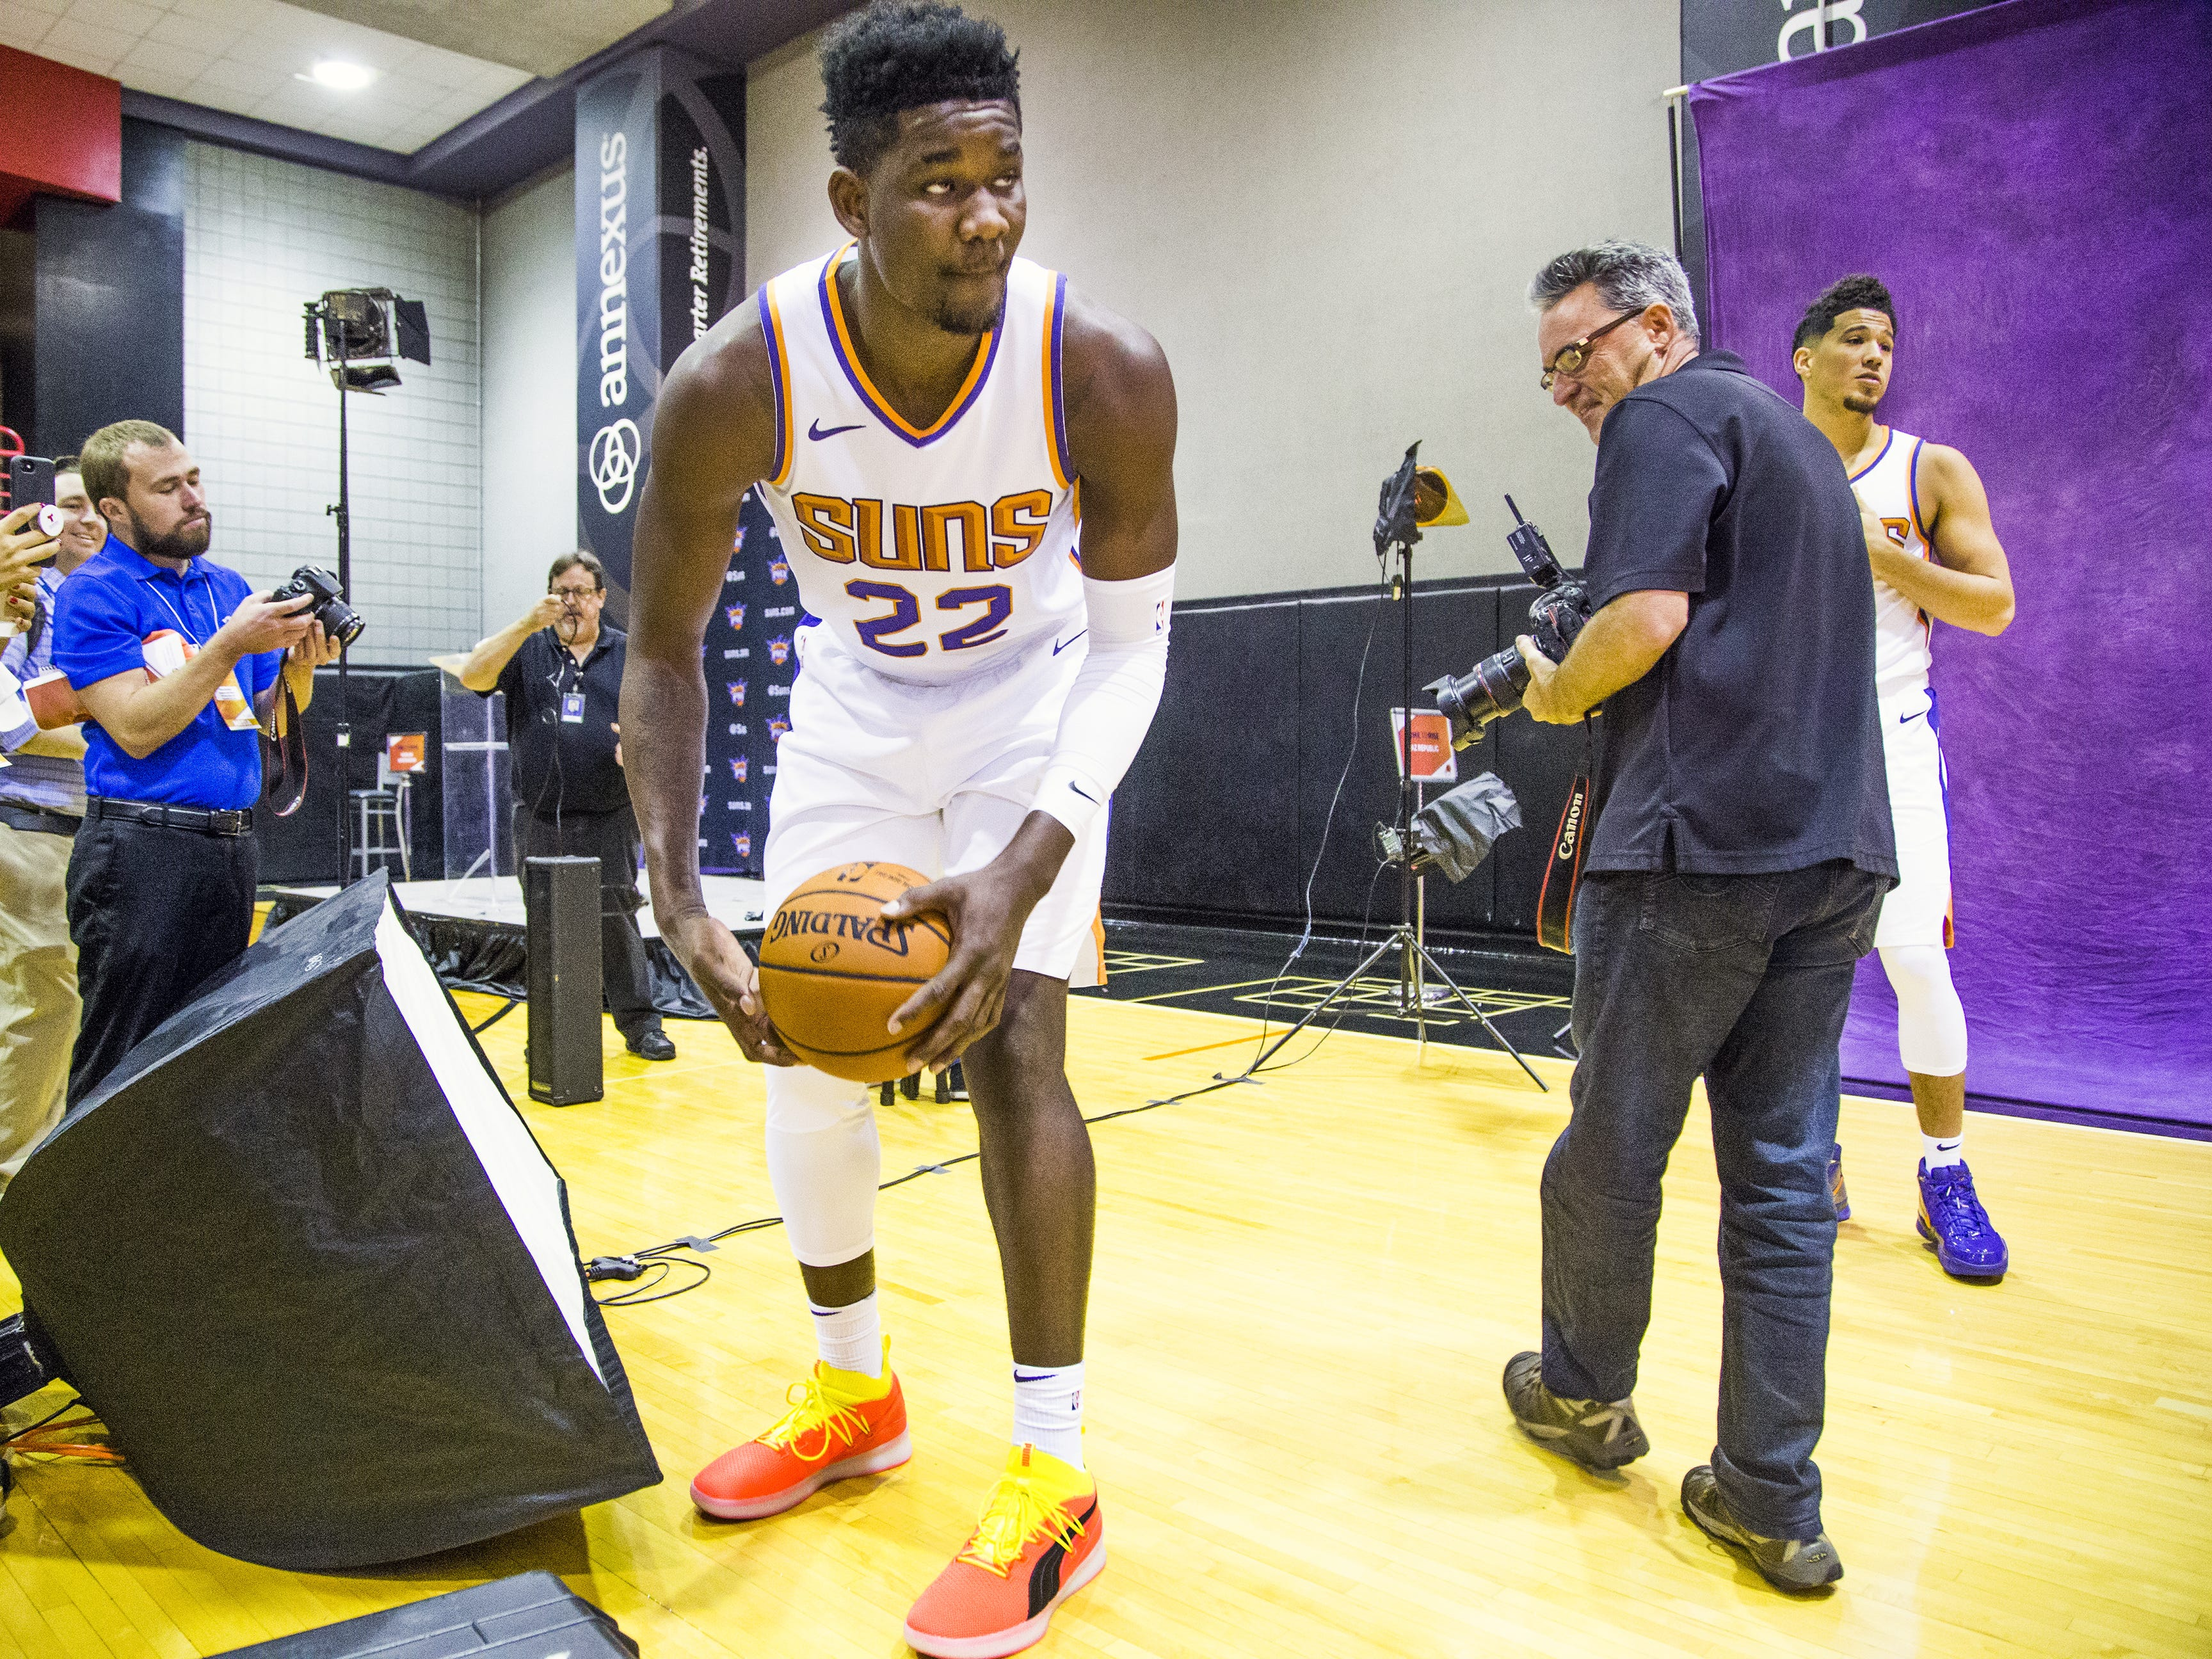 Deandre Ayton, center for the Phoenix Suns, picks up a basketball as Arizona Republic photographer Rob Schumacher prepares to photograph Ayton and Phoenix Suns guard Devin Booker, right, at Phoenix Suns Media Day at Talking Stick Resort Arena in Phoenix, Monday, September 24, 2018.